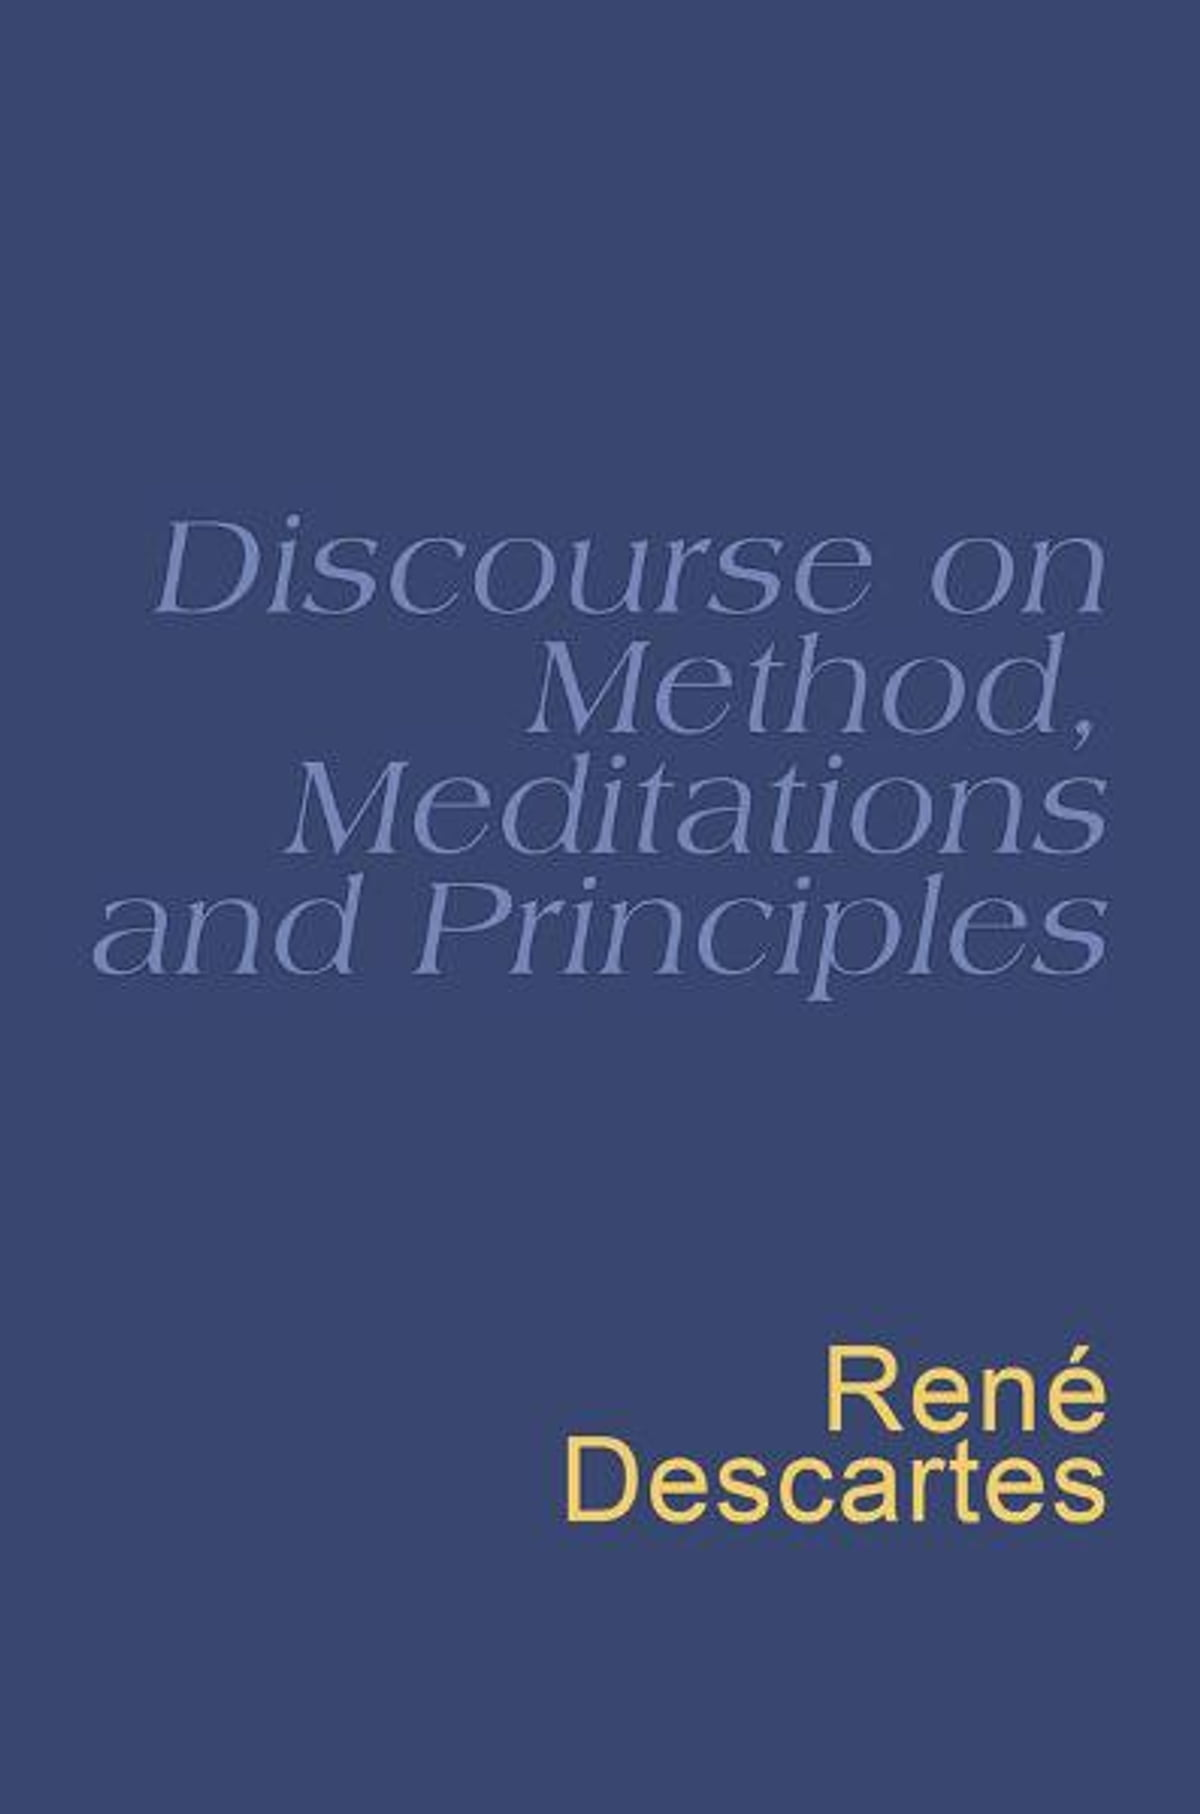 meditation and discourse on the method by Descartes discourse on method essay examples 936 words may 13th, 2005 4 pages  argument for the claim that mind and matter are distinct substances descartes' argument for dualism in his meditations rene descartes aimed to reconstruct the whole of science by trying to prove the distinction between mind and matter he gives an argument.